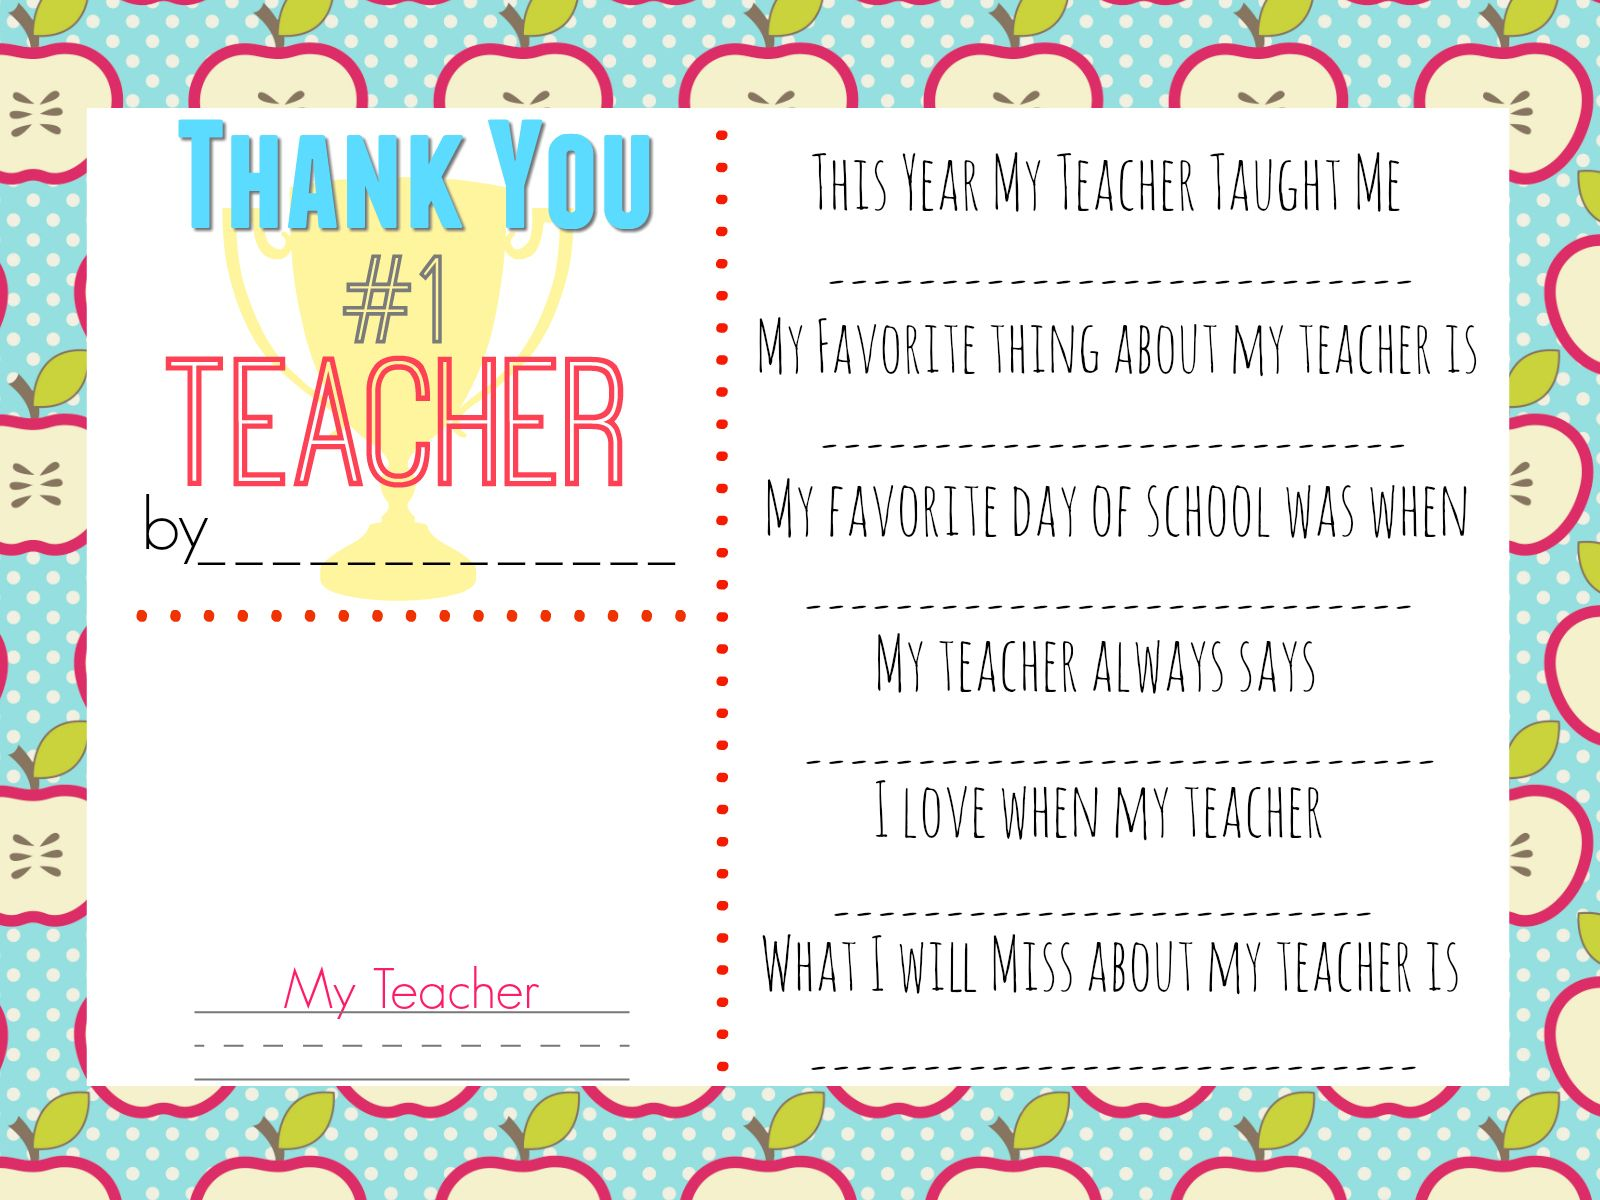 photograph regarding All About My Teacher Free Printable called Pin upon Instructor appreciation presents